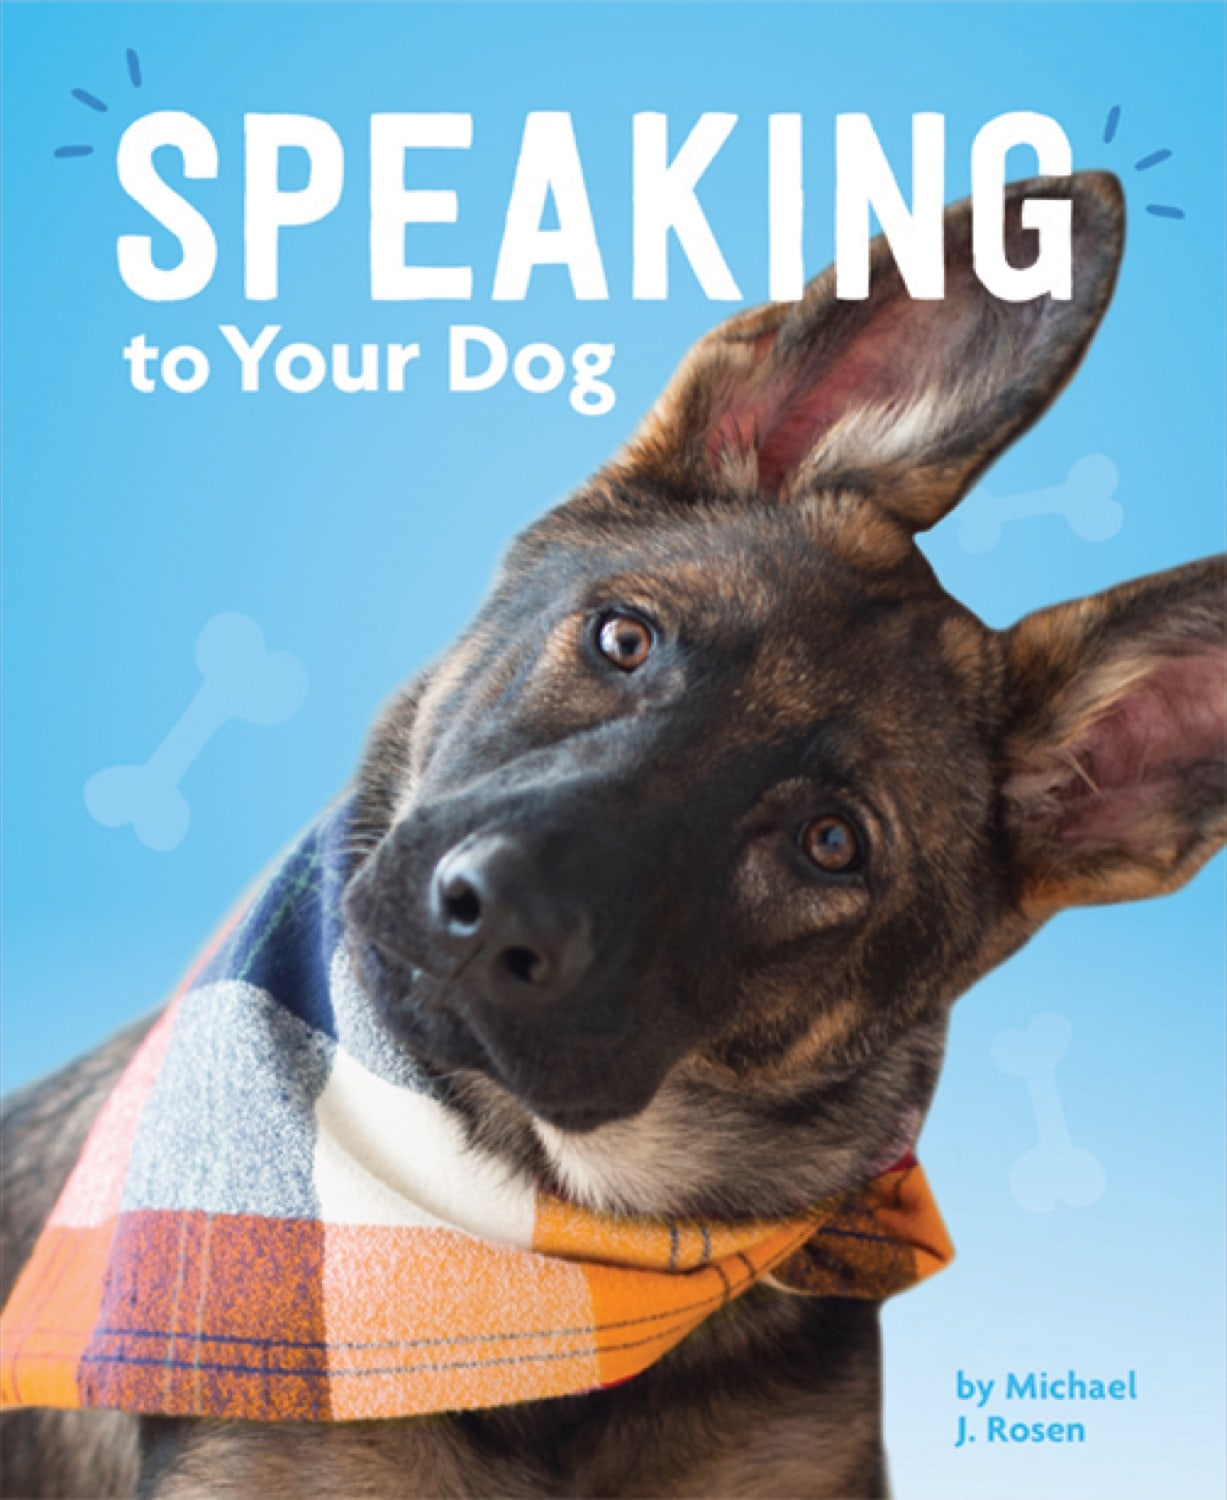 Dog's Life, A: Speaking to Your Dog